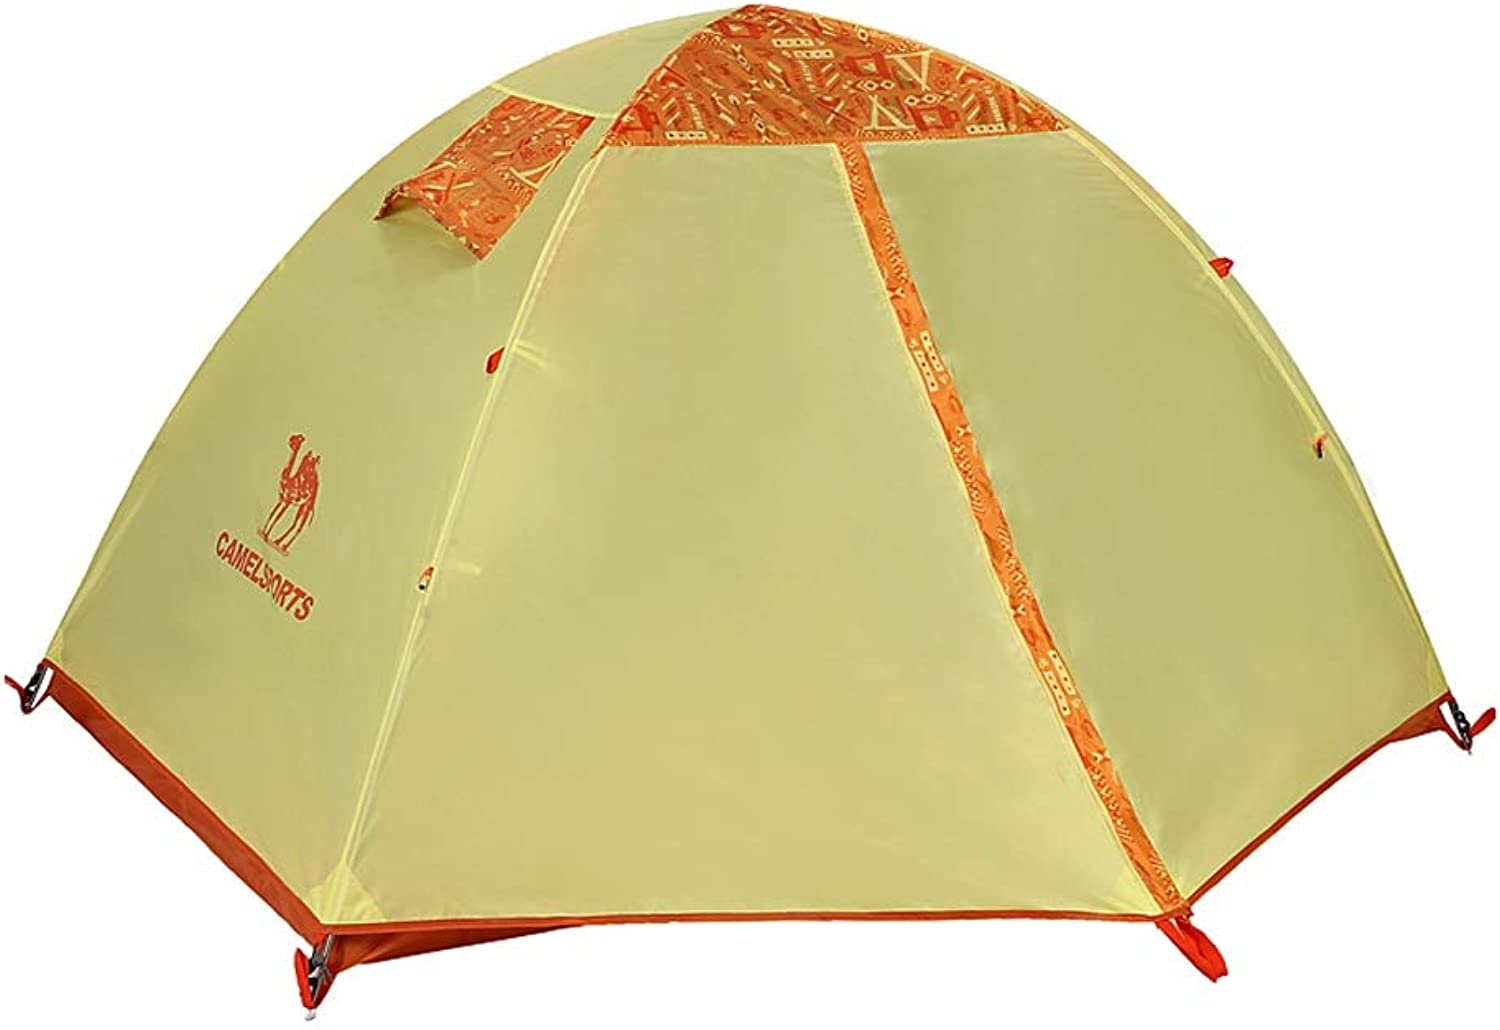 Camel Outdoor Camping Tent, 2 People, DoubleLayer Structure, Easy Manual Construction, Double Door, Rainproof Sunscreen, Suitable for Picnic Beach Park Lawn Field Fishing (color   red Green)